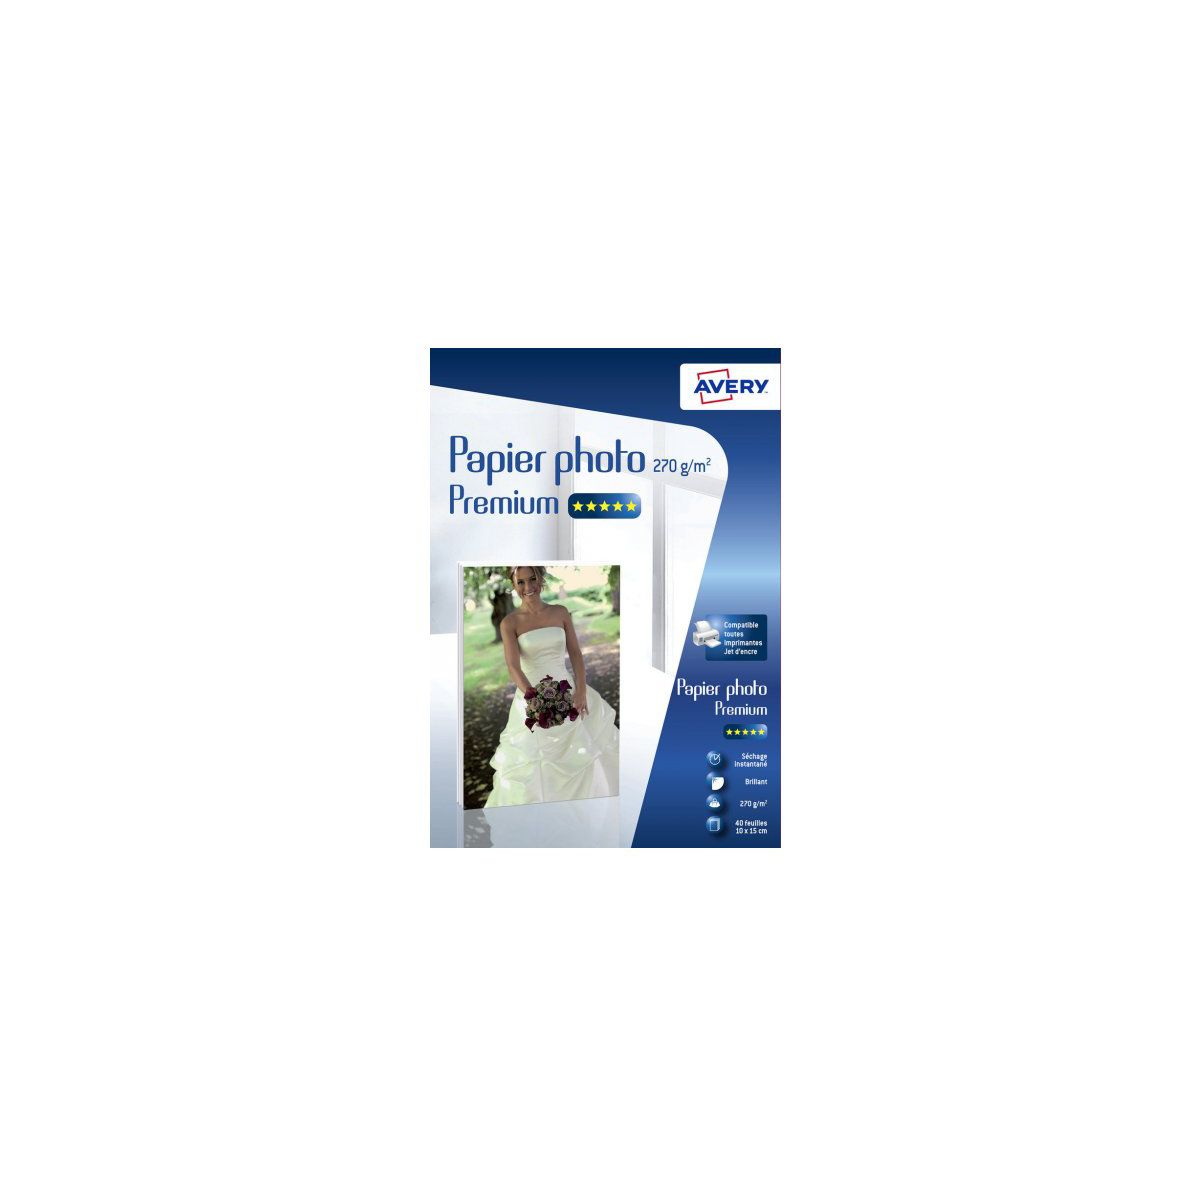 Papier photo AVERY 40 Photos brillantes 10x15 270g (photo)